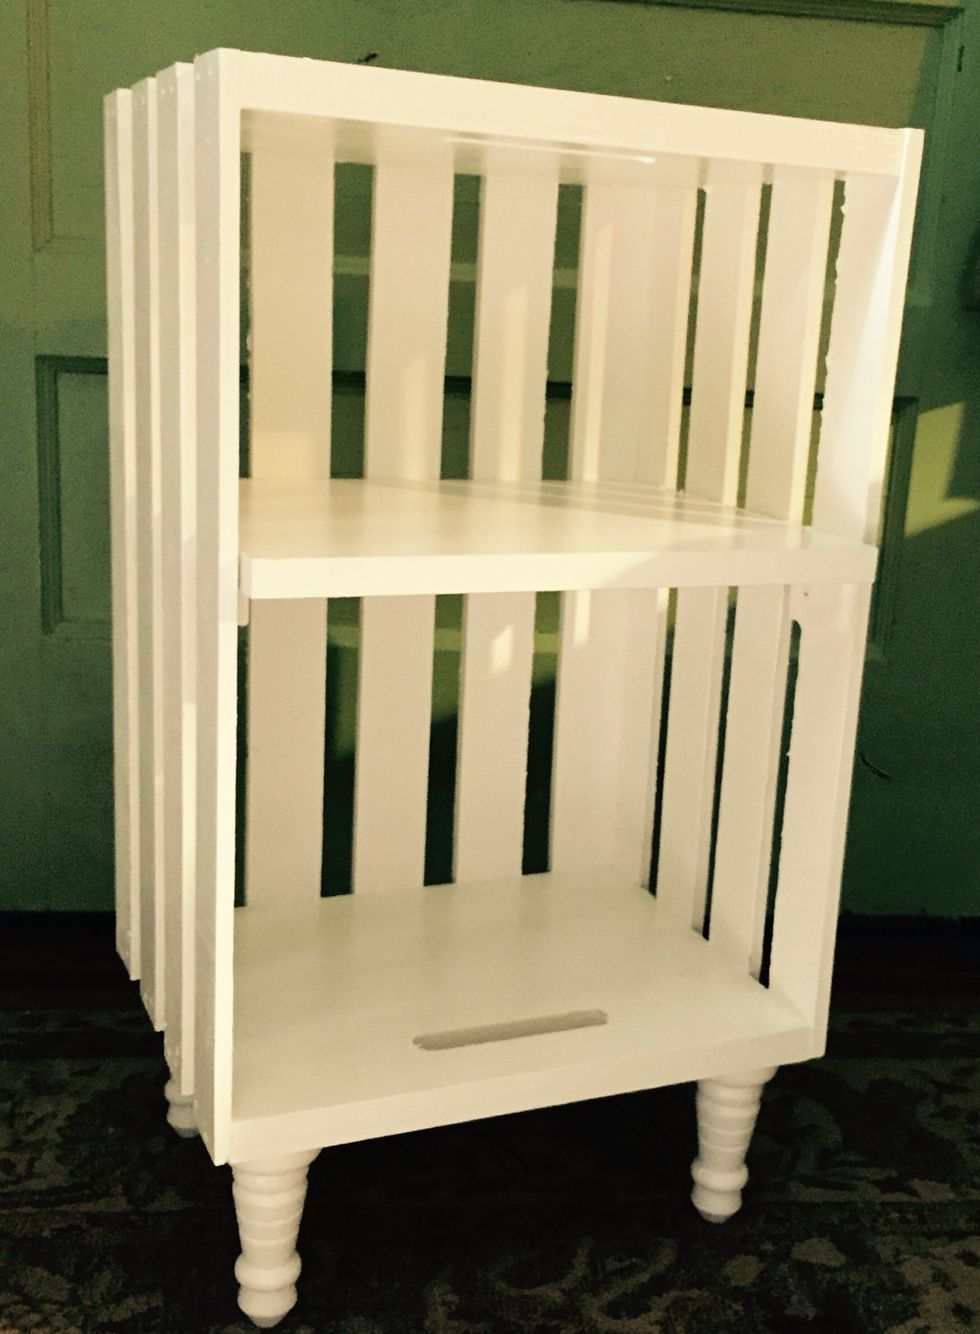 Pinterest Win Newly Constructed Crate Based Bedside Table For The Kid S Bedroom Crate Furniture Diy Furniture Wood Crates